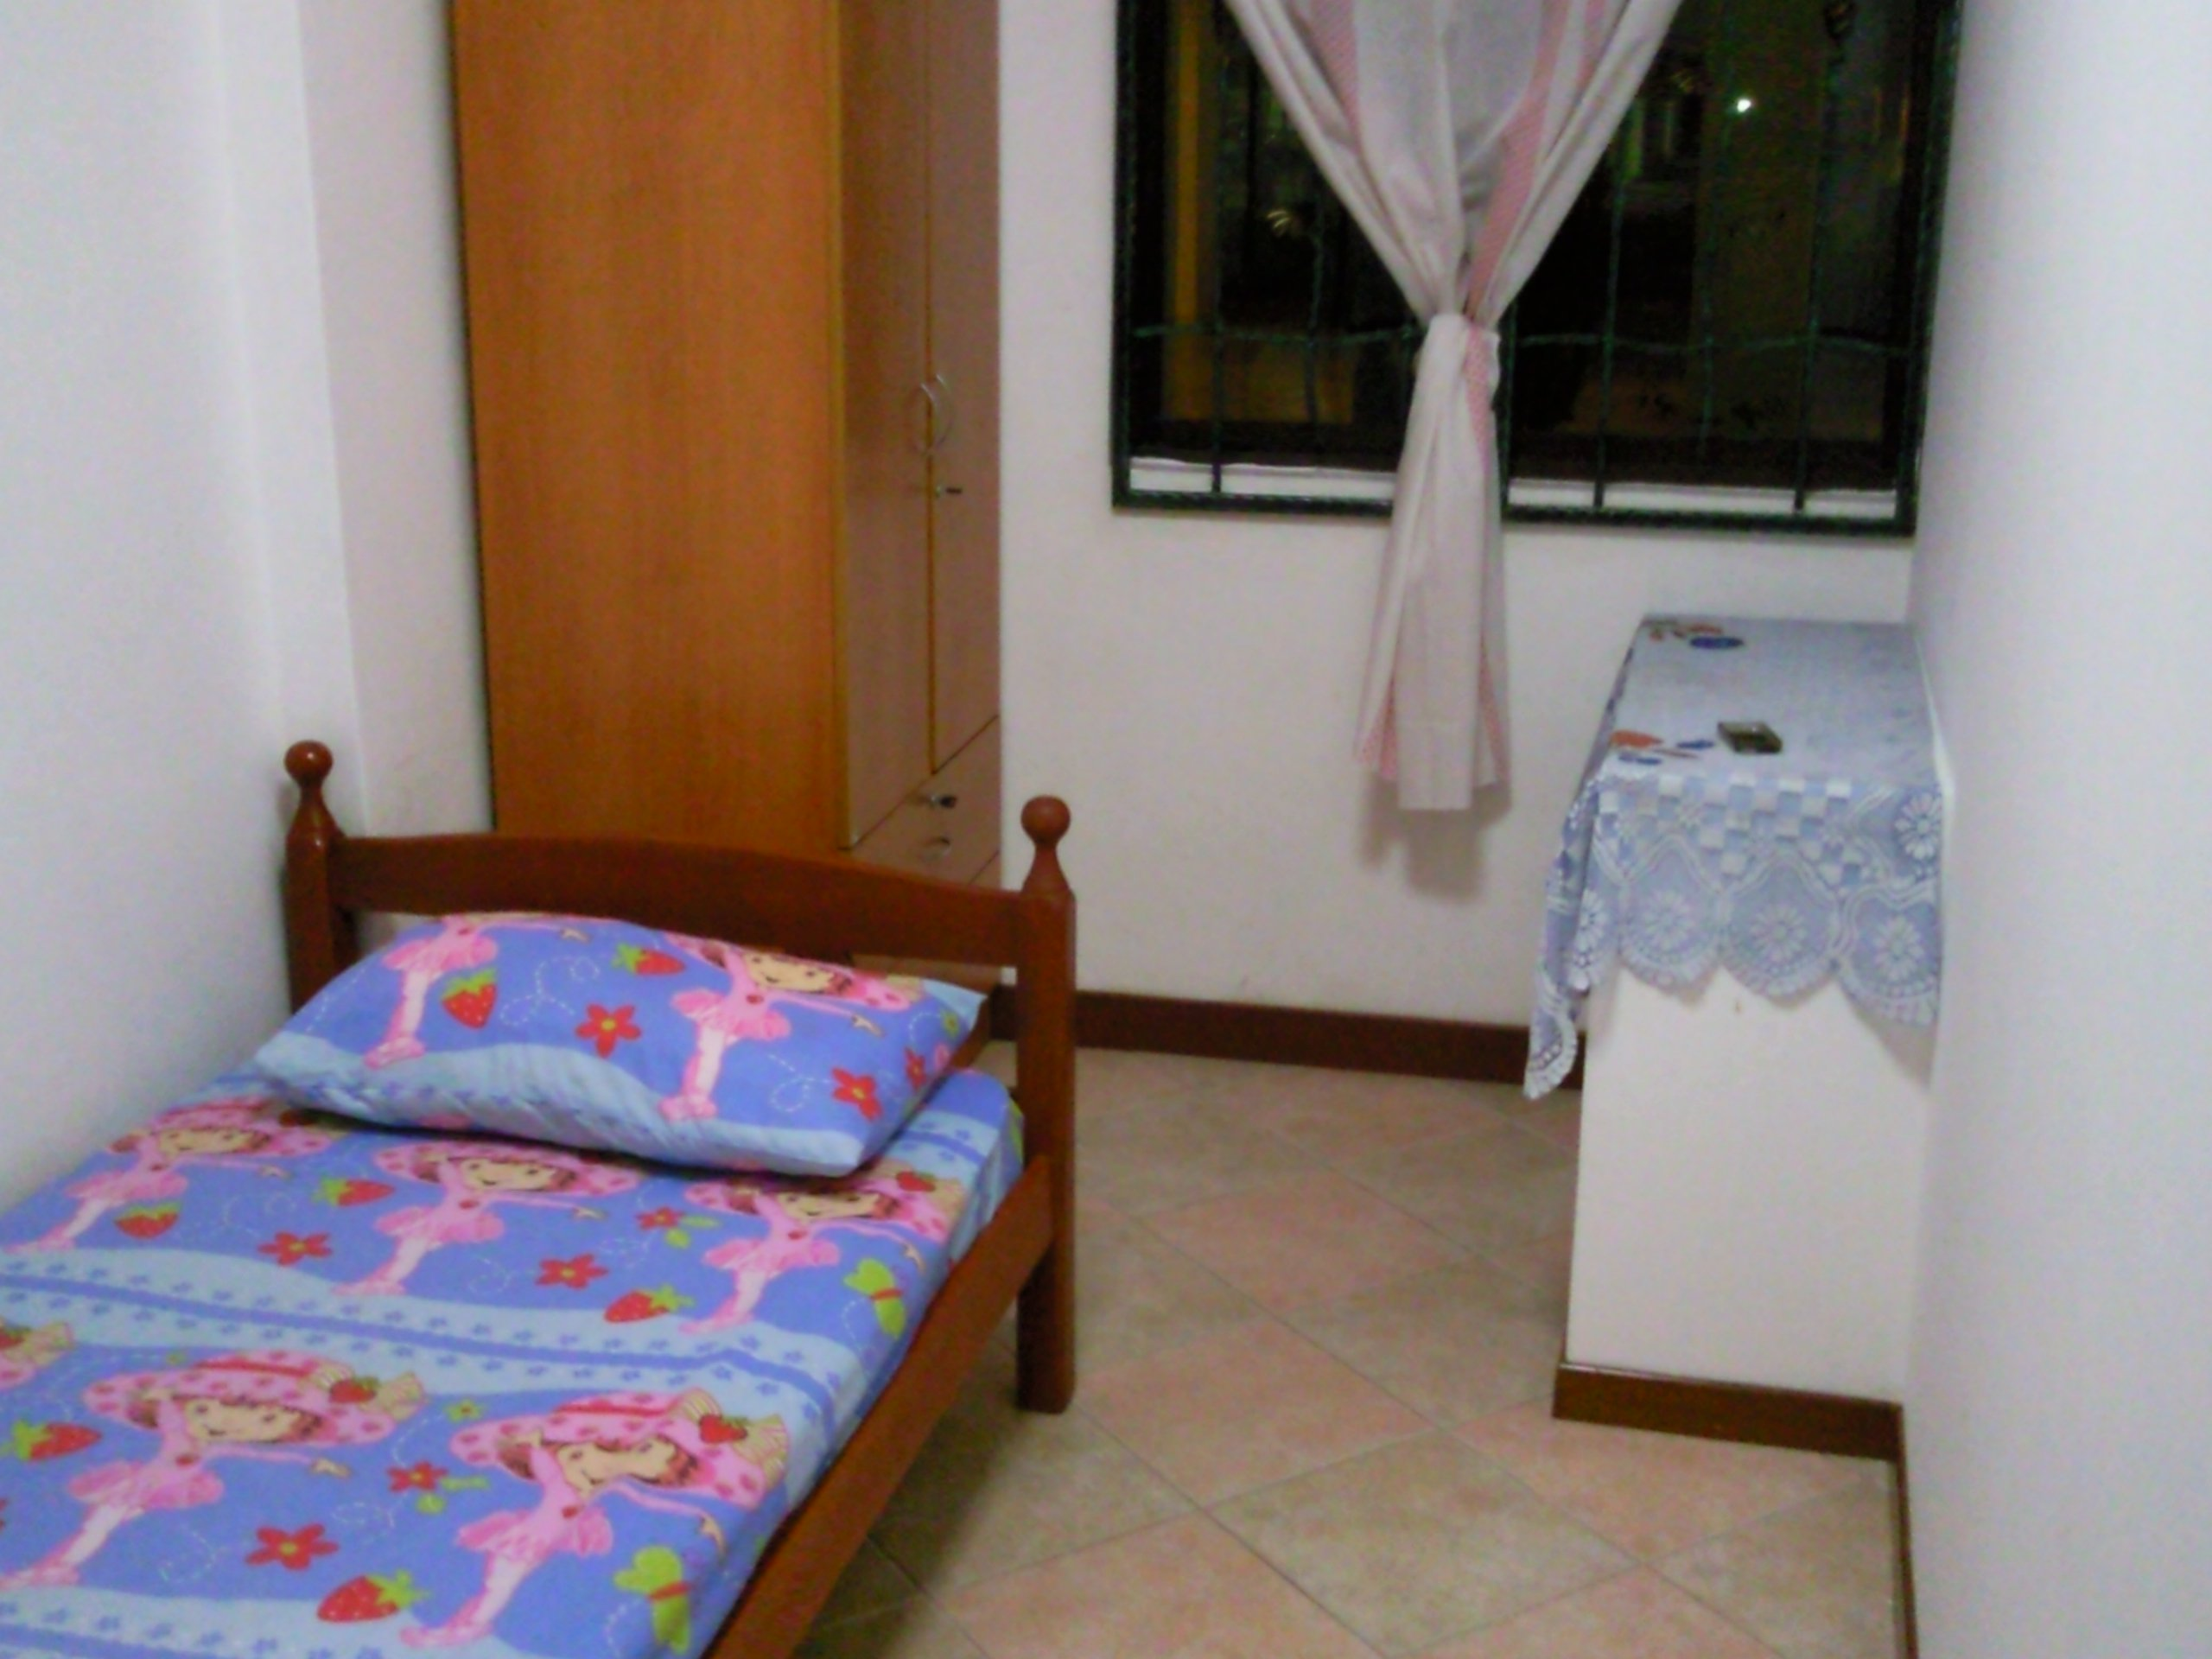 ROOM TO LET: Budget Room For Rent Near Admiralty MRT @ $400